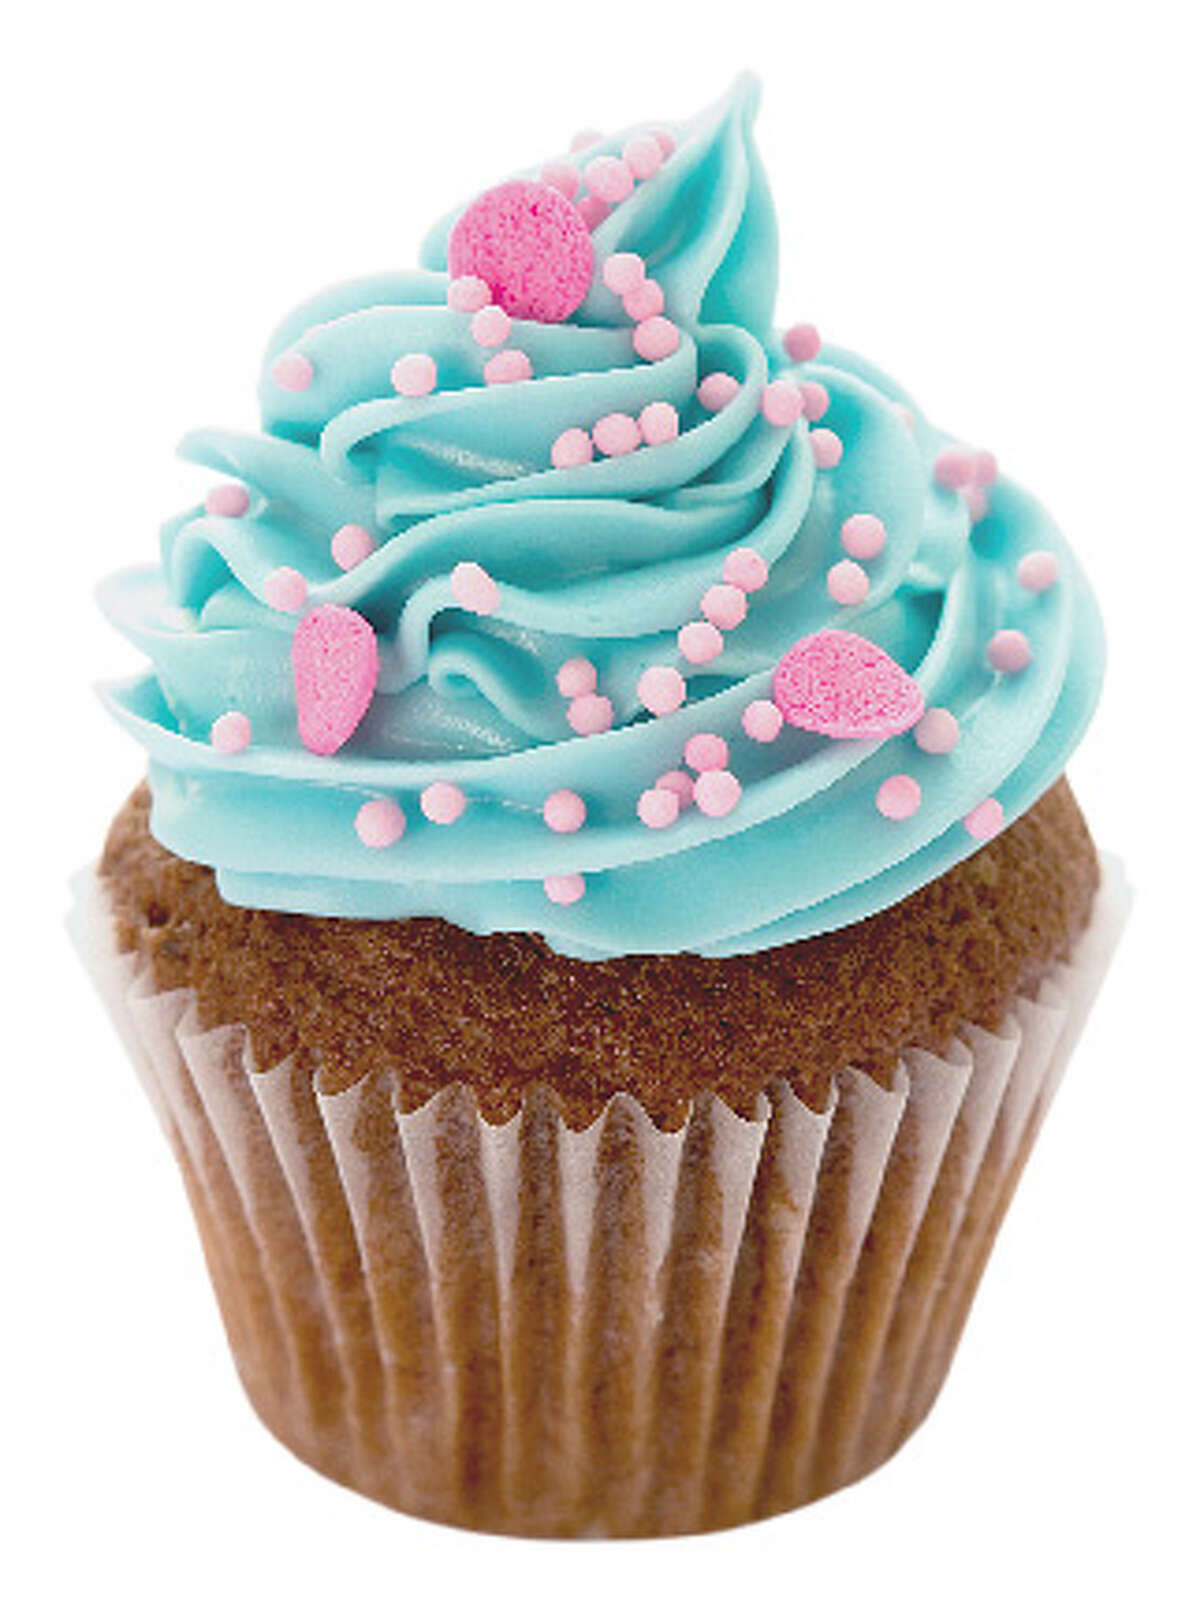 Will cupcakes make a federal hit list that could ban sugary goods from fundraisers?